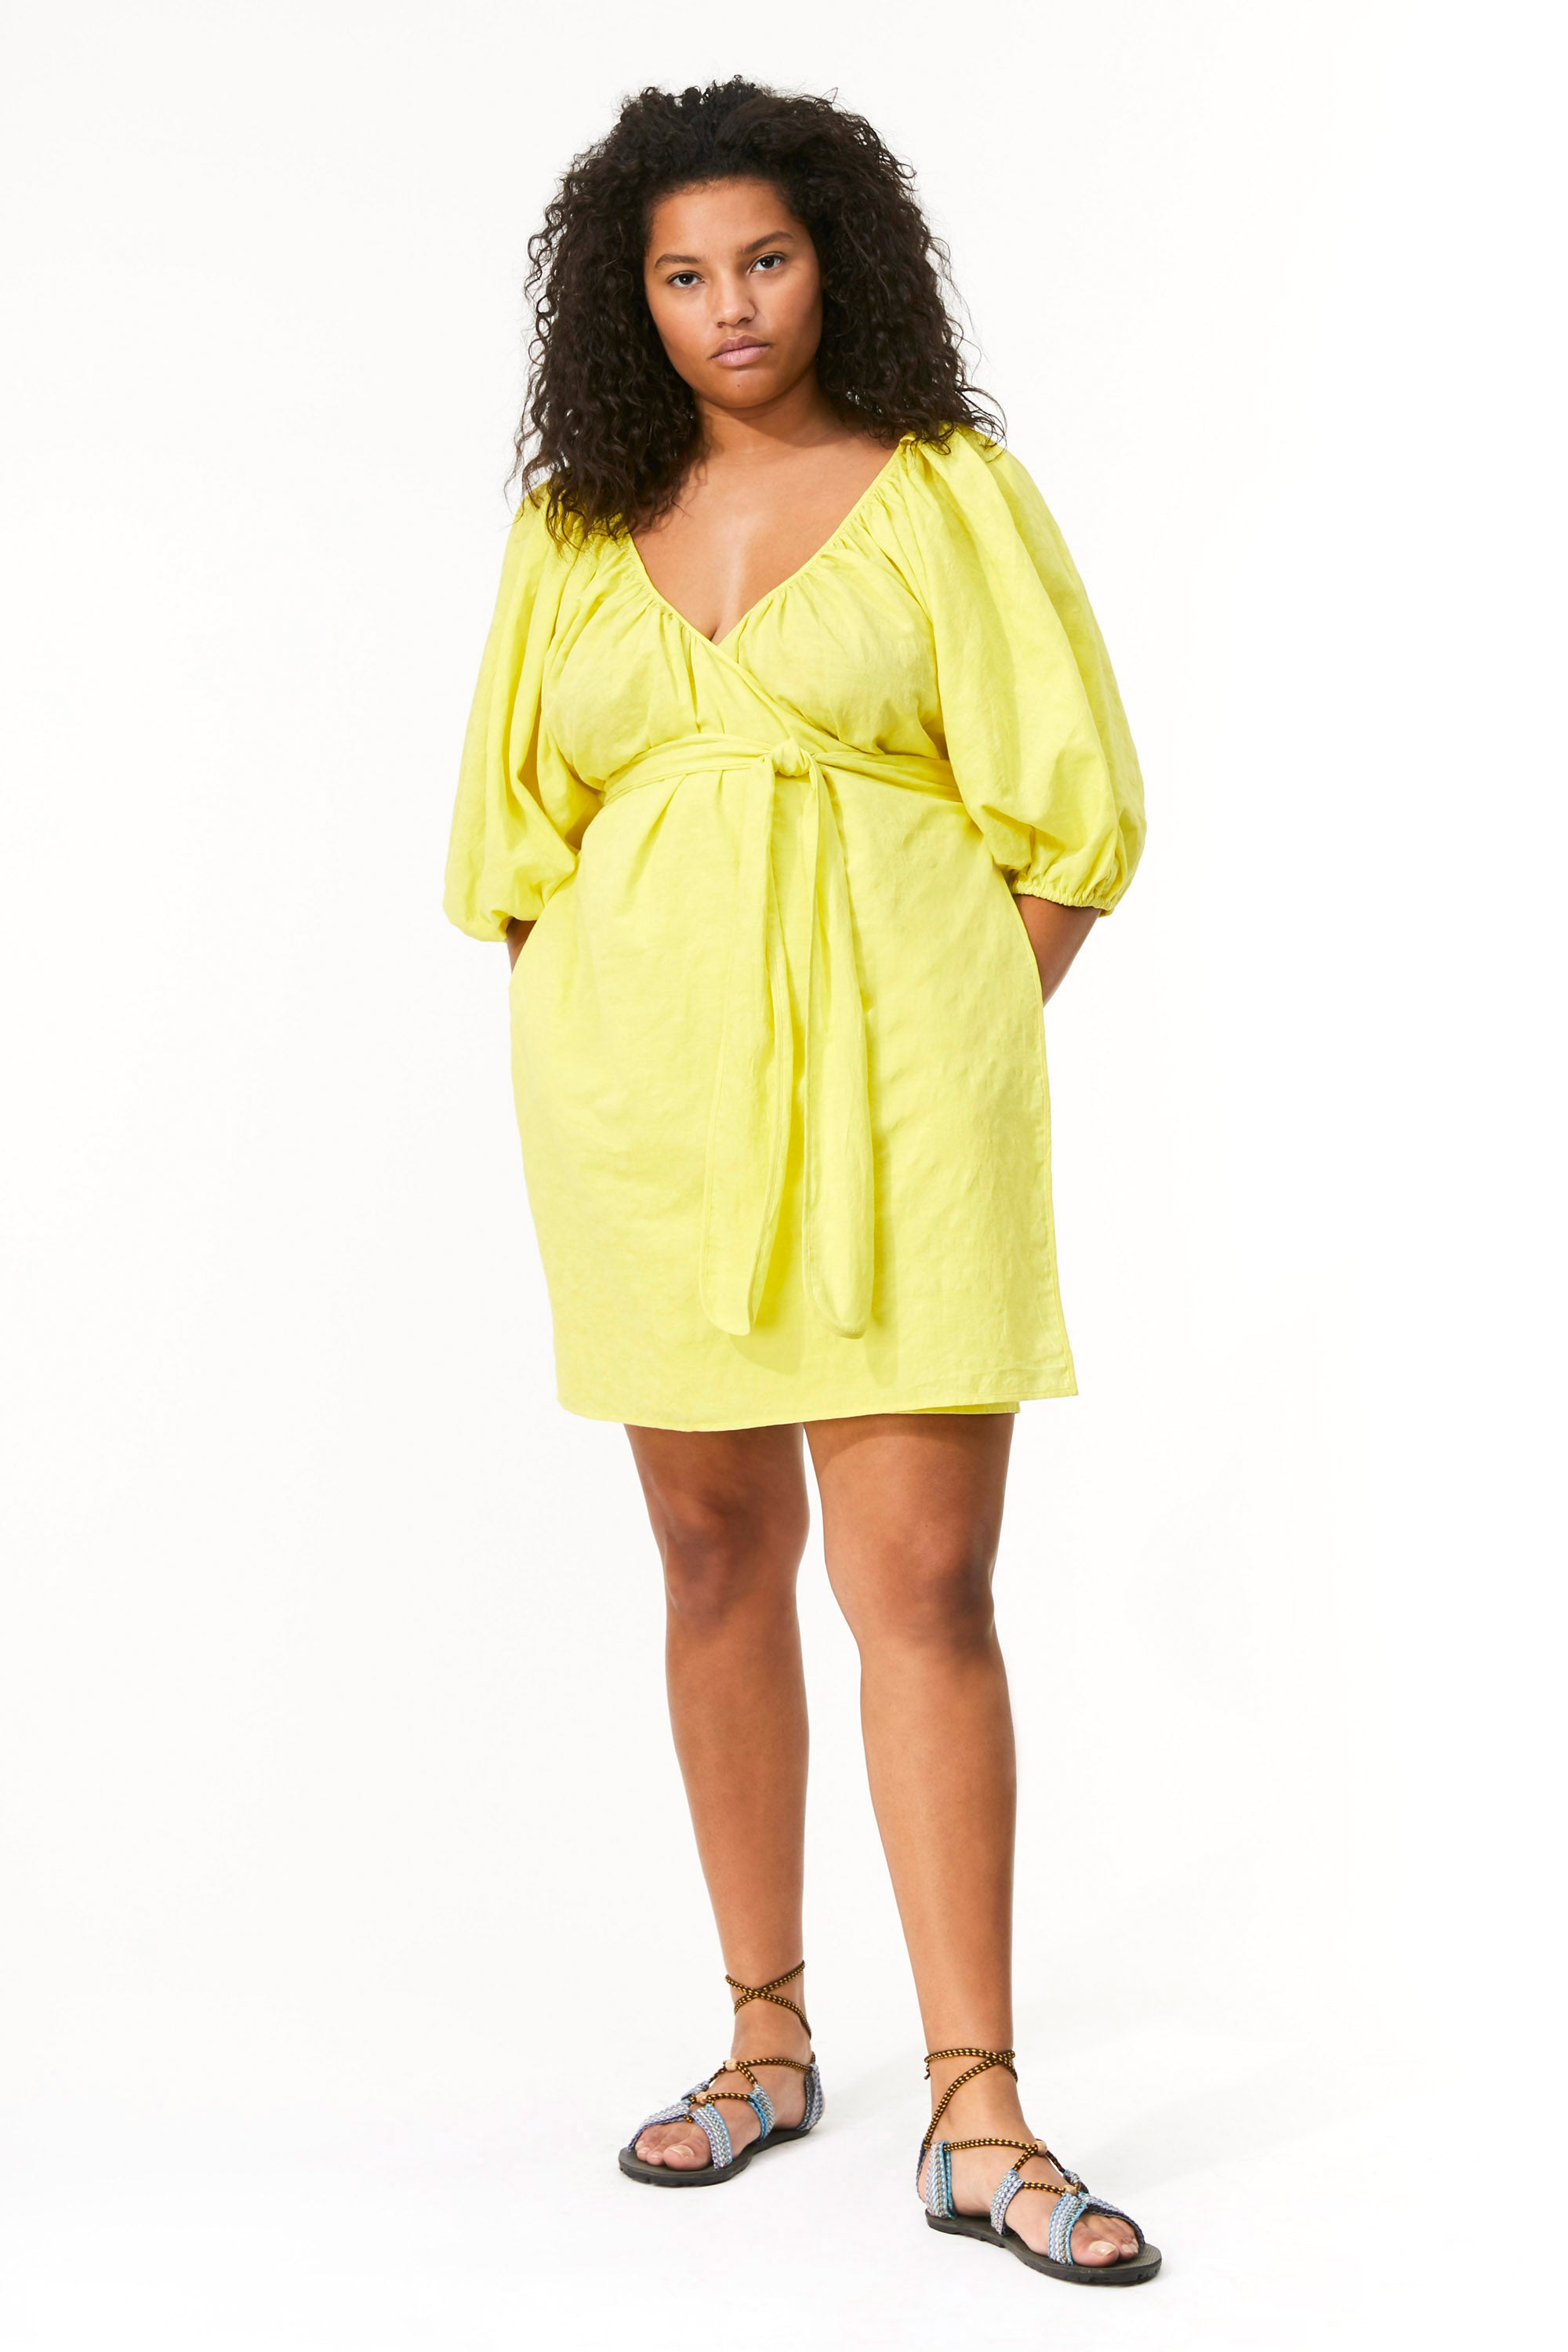 Mara Hoffman Extended Neon Green Coletta Cover Up Dress in organic cotton and linen (front)